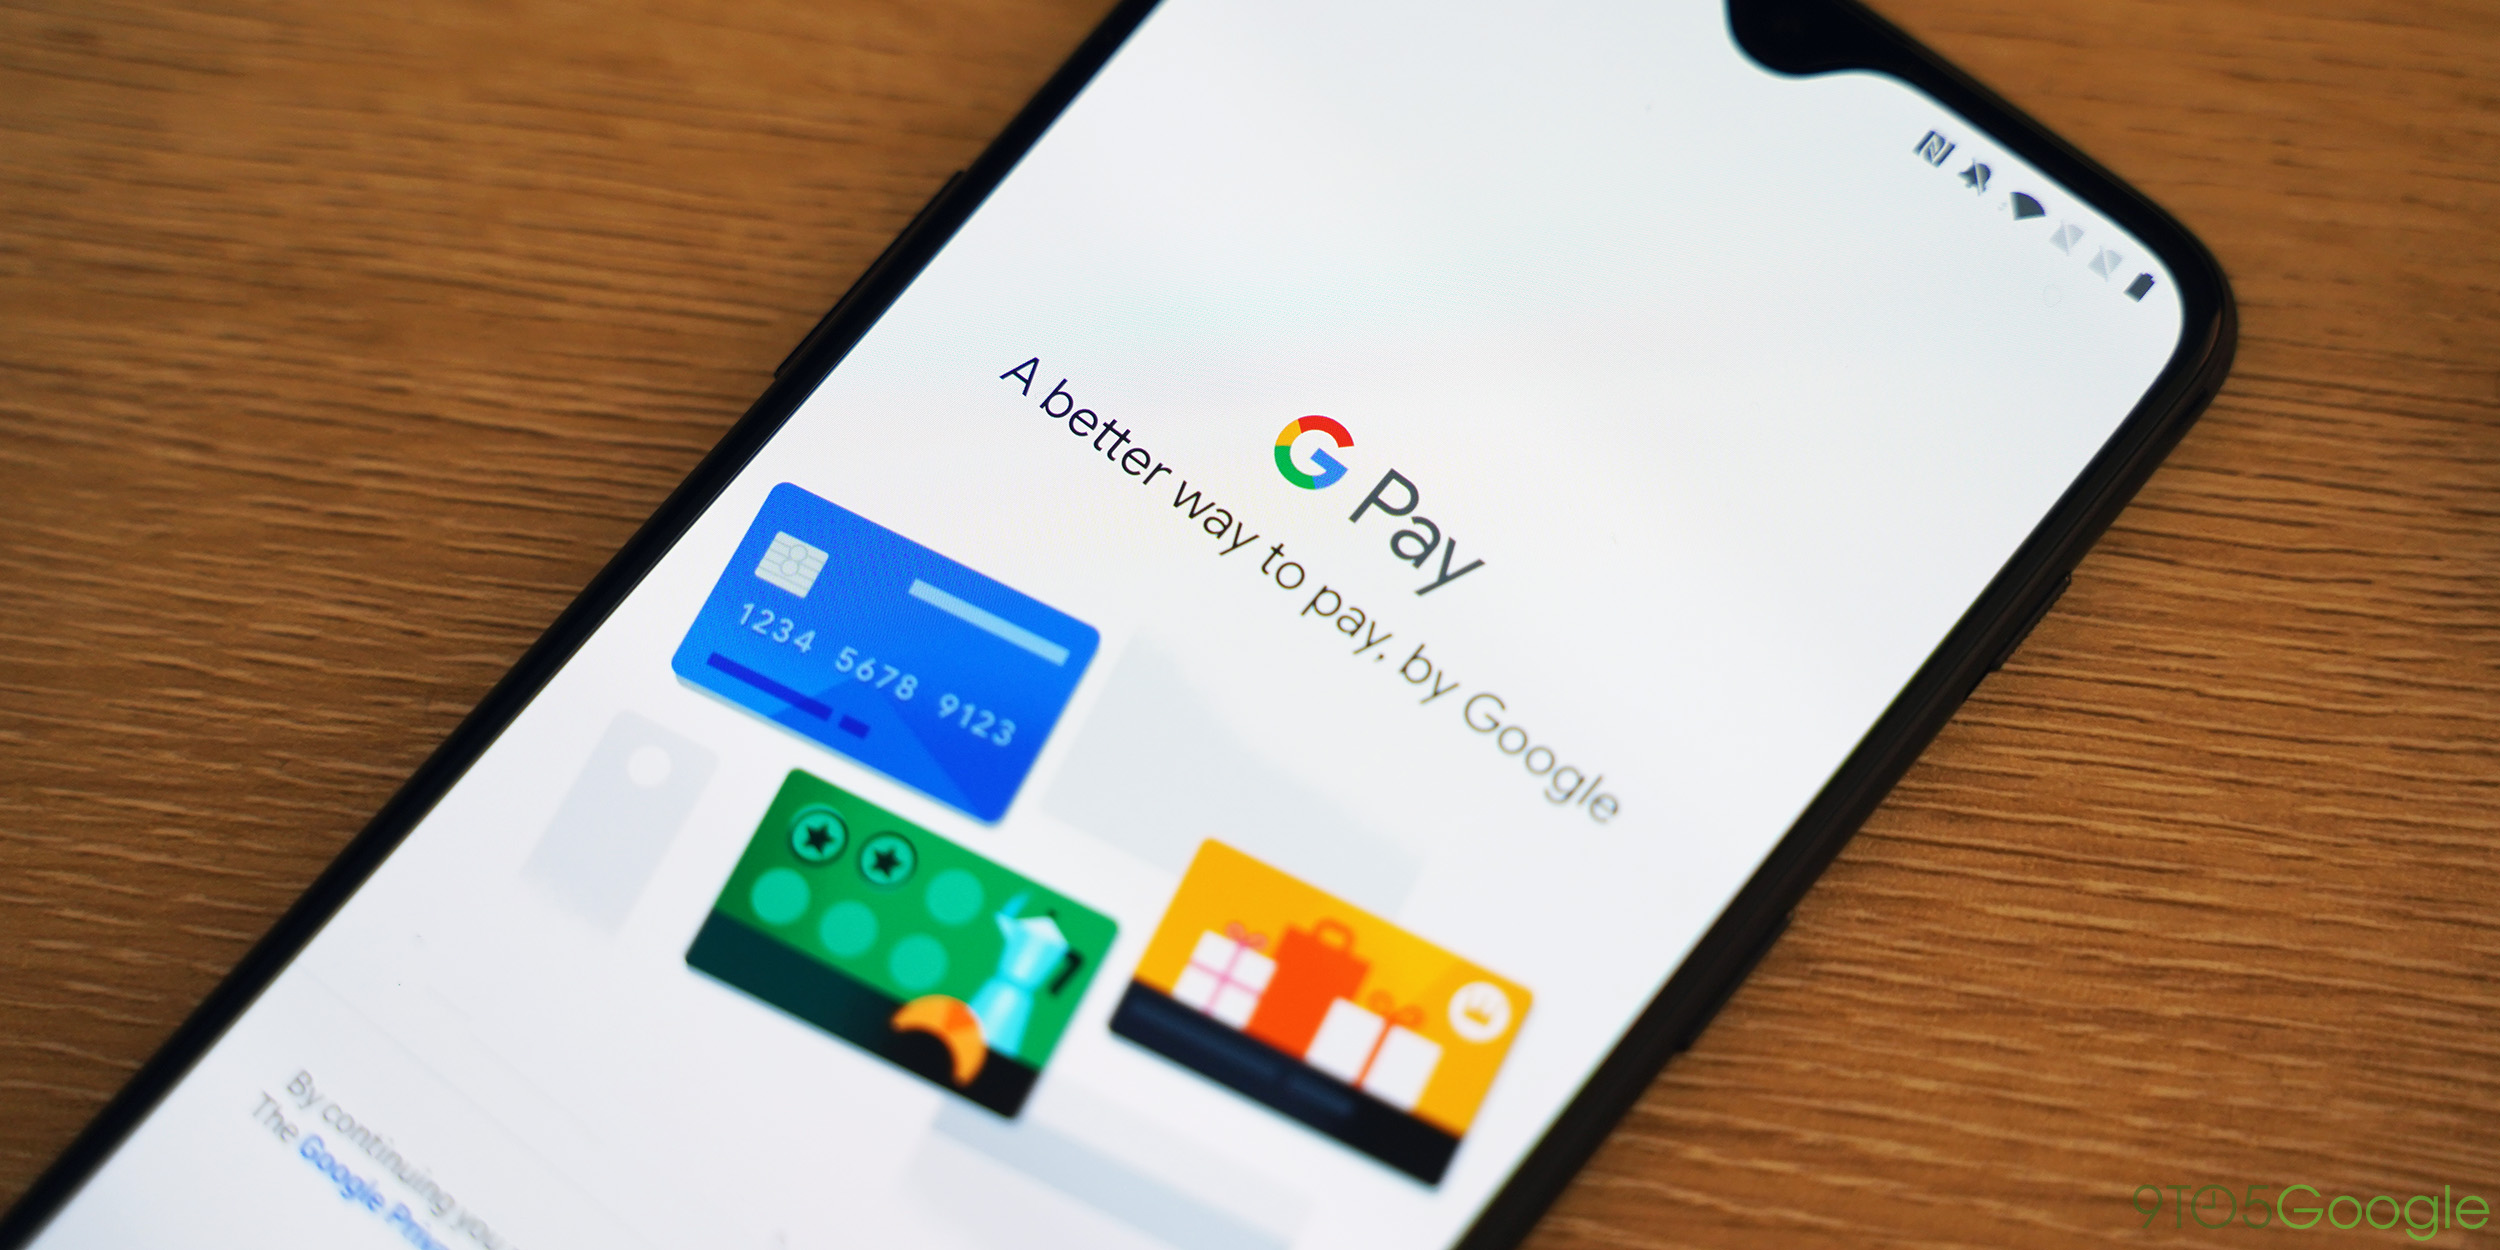 [Update: 4 more] Google Pay adds support for 16 more banks in the US, including E*Trade